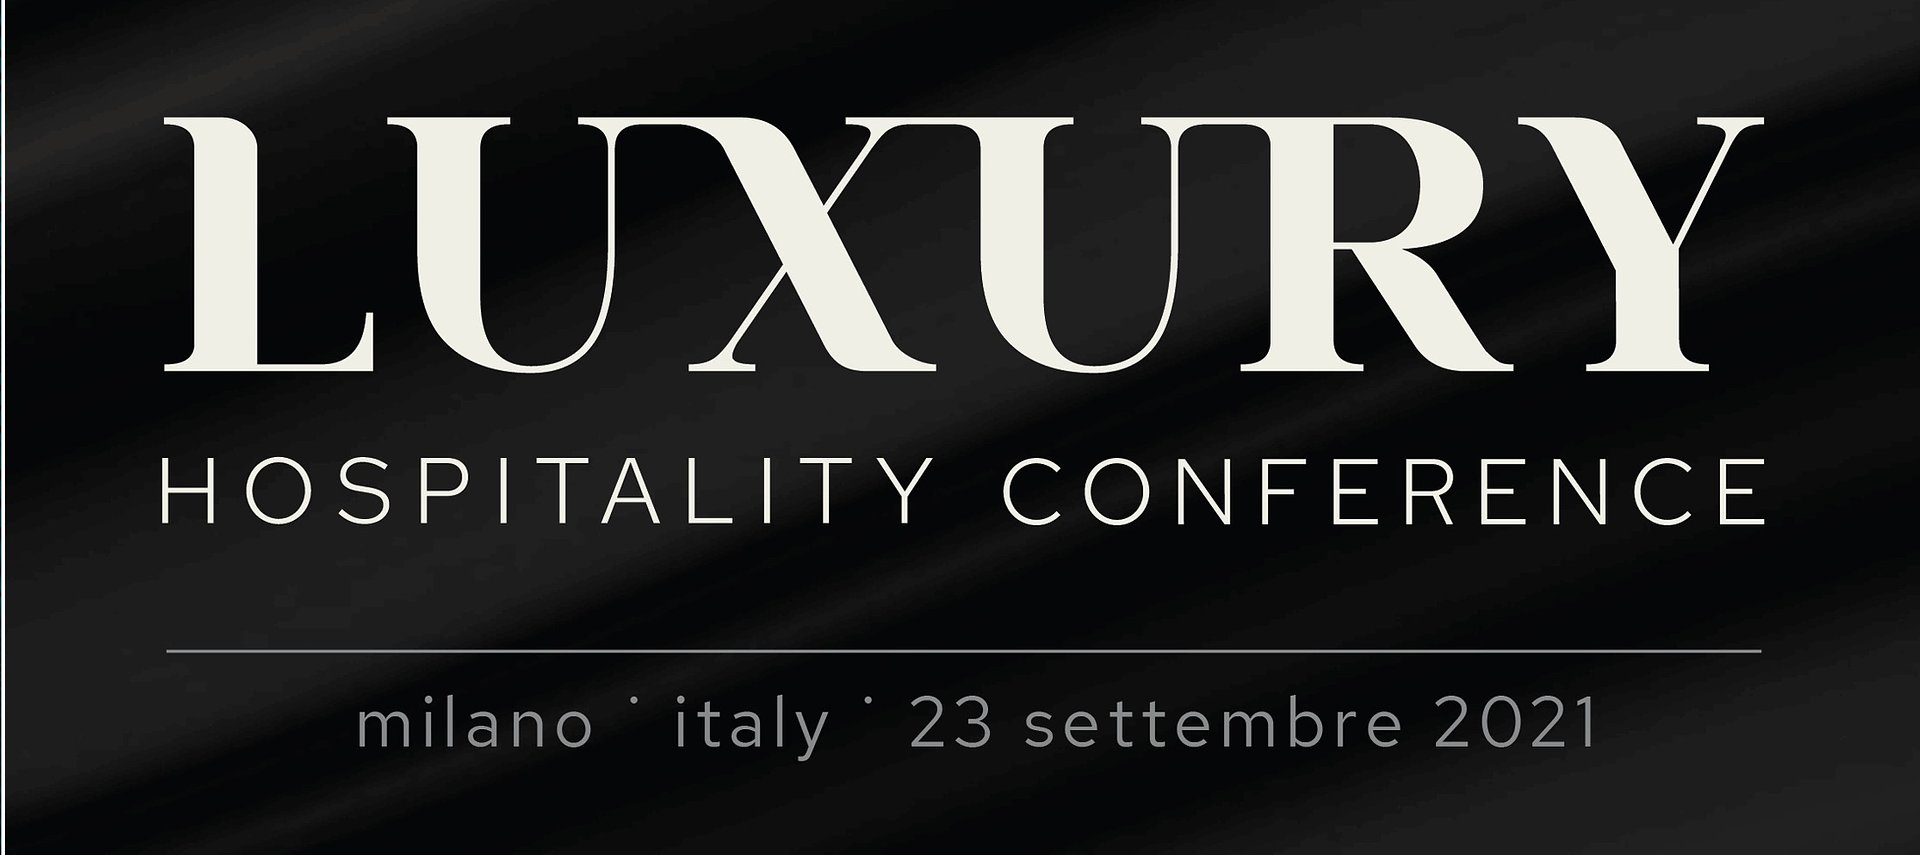 The world of luxury in the hospitality sector